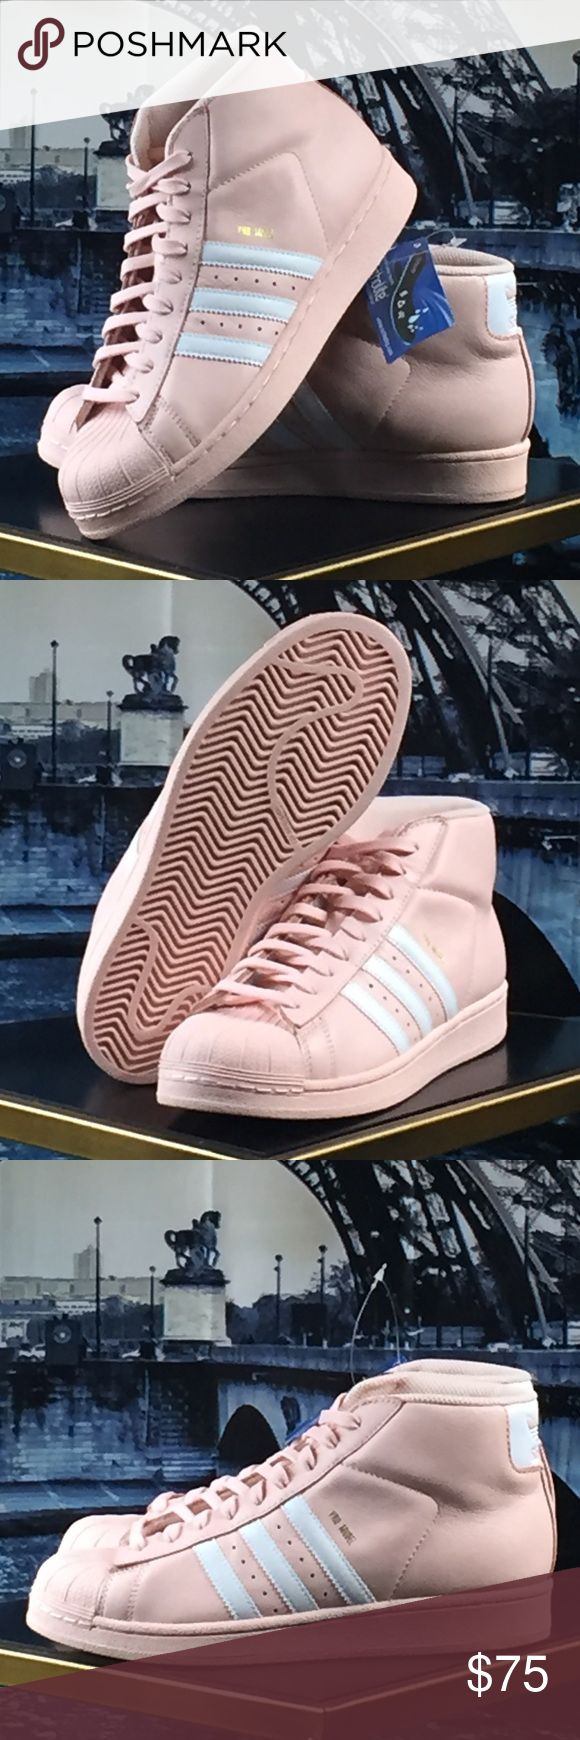 Adidas Pro Model BRAND NEW!!! Adidas Pro Model Youth size 6/Women's size 7.5. Hi top leather design. Pink with white stripes. Removable insoles. Brand new with tags. Box not included. Adidas Shoes Sneakers